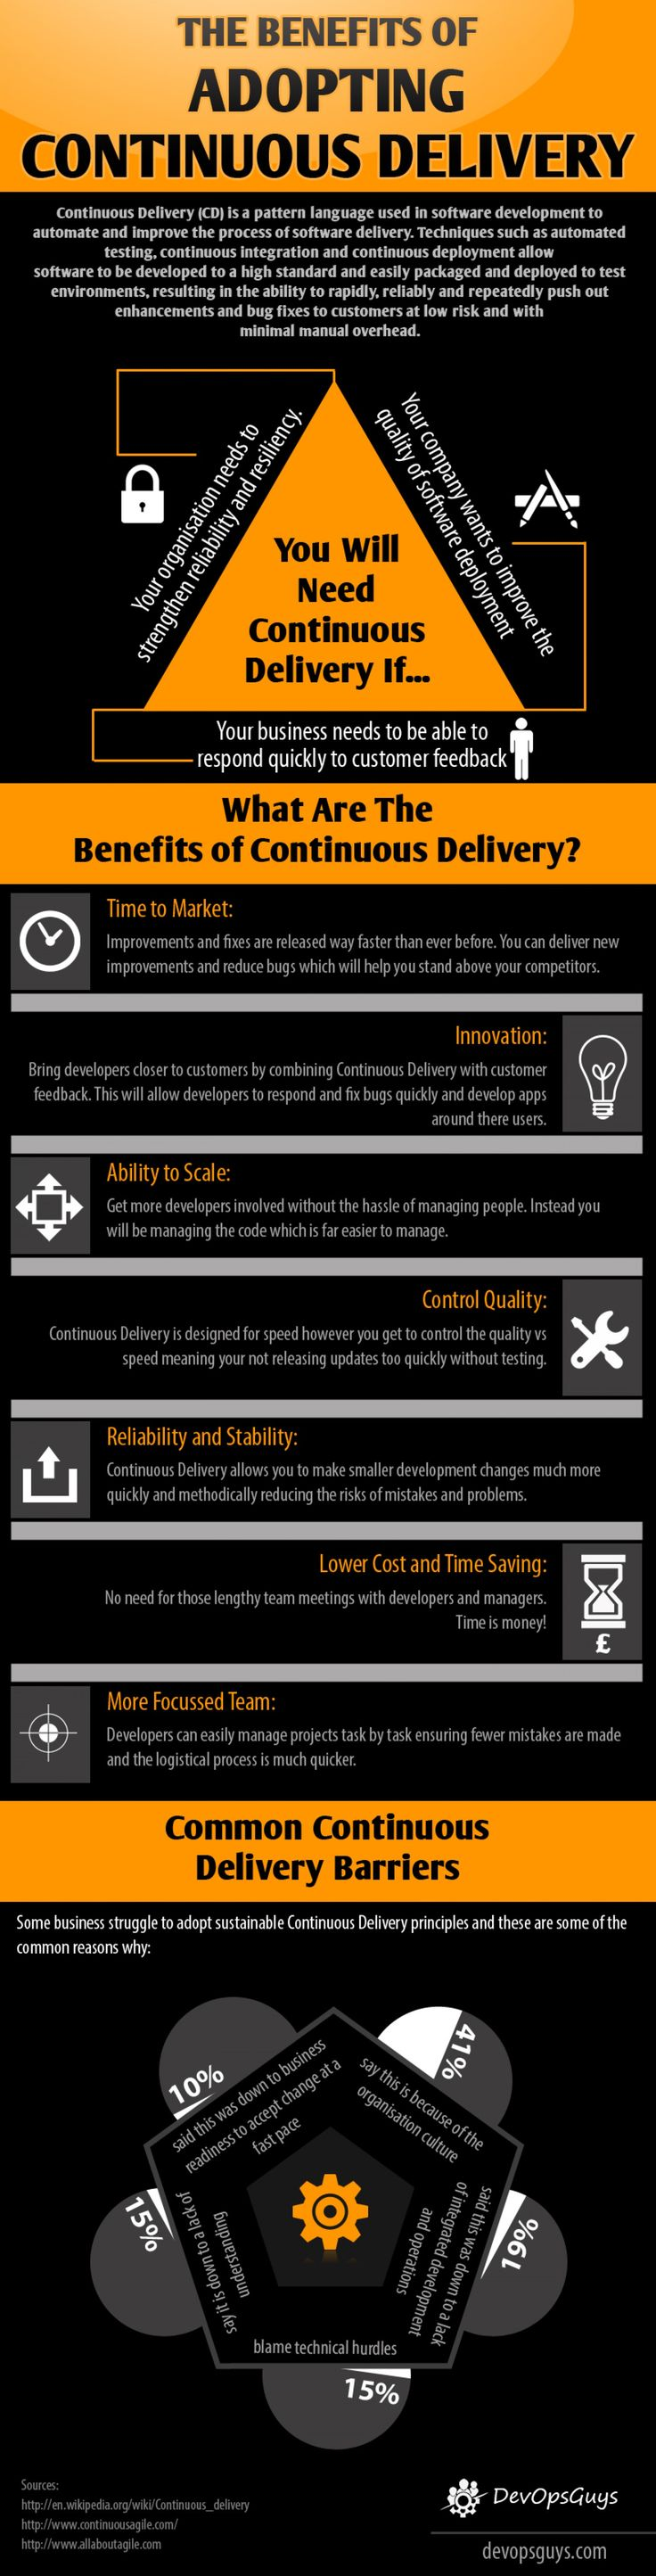 Benefits of Adopting Continuous Delivery Infographic